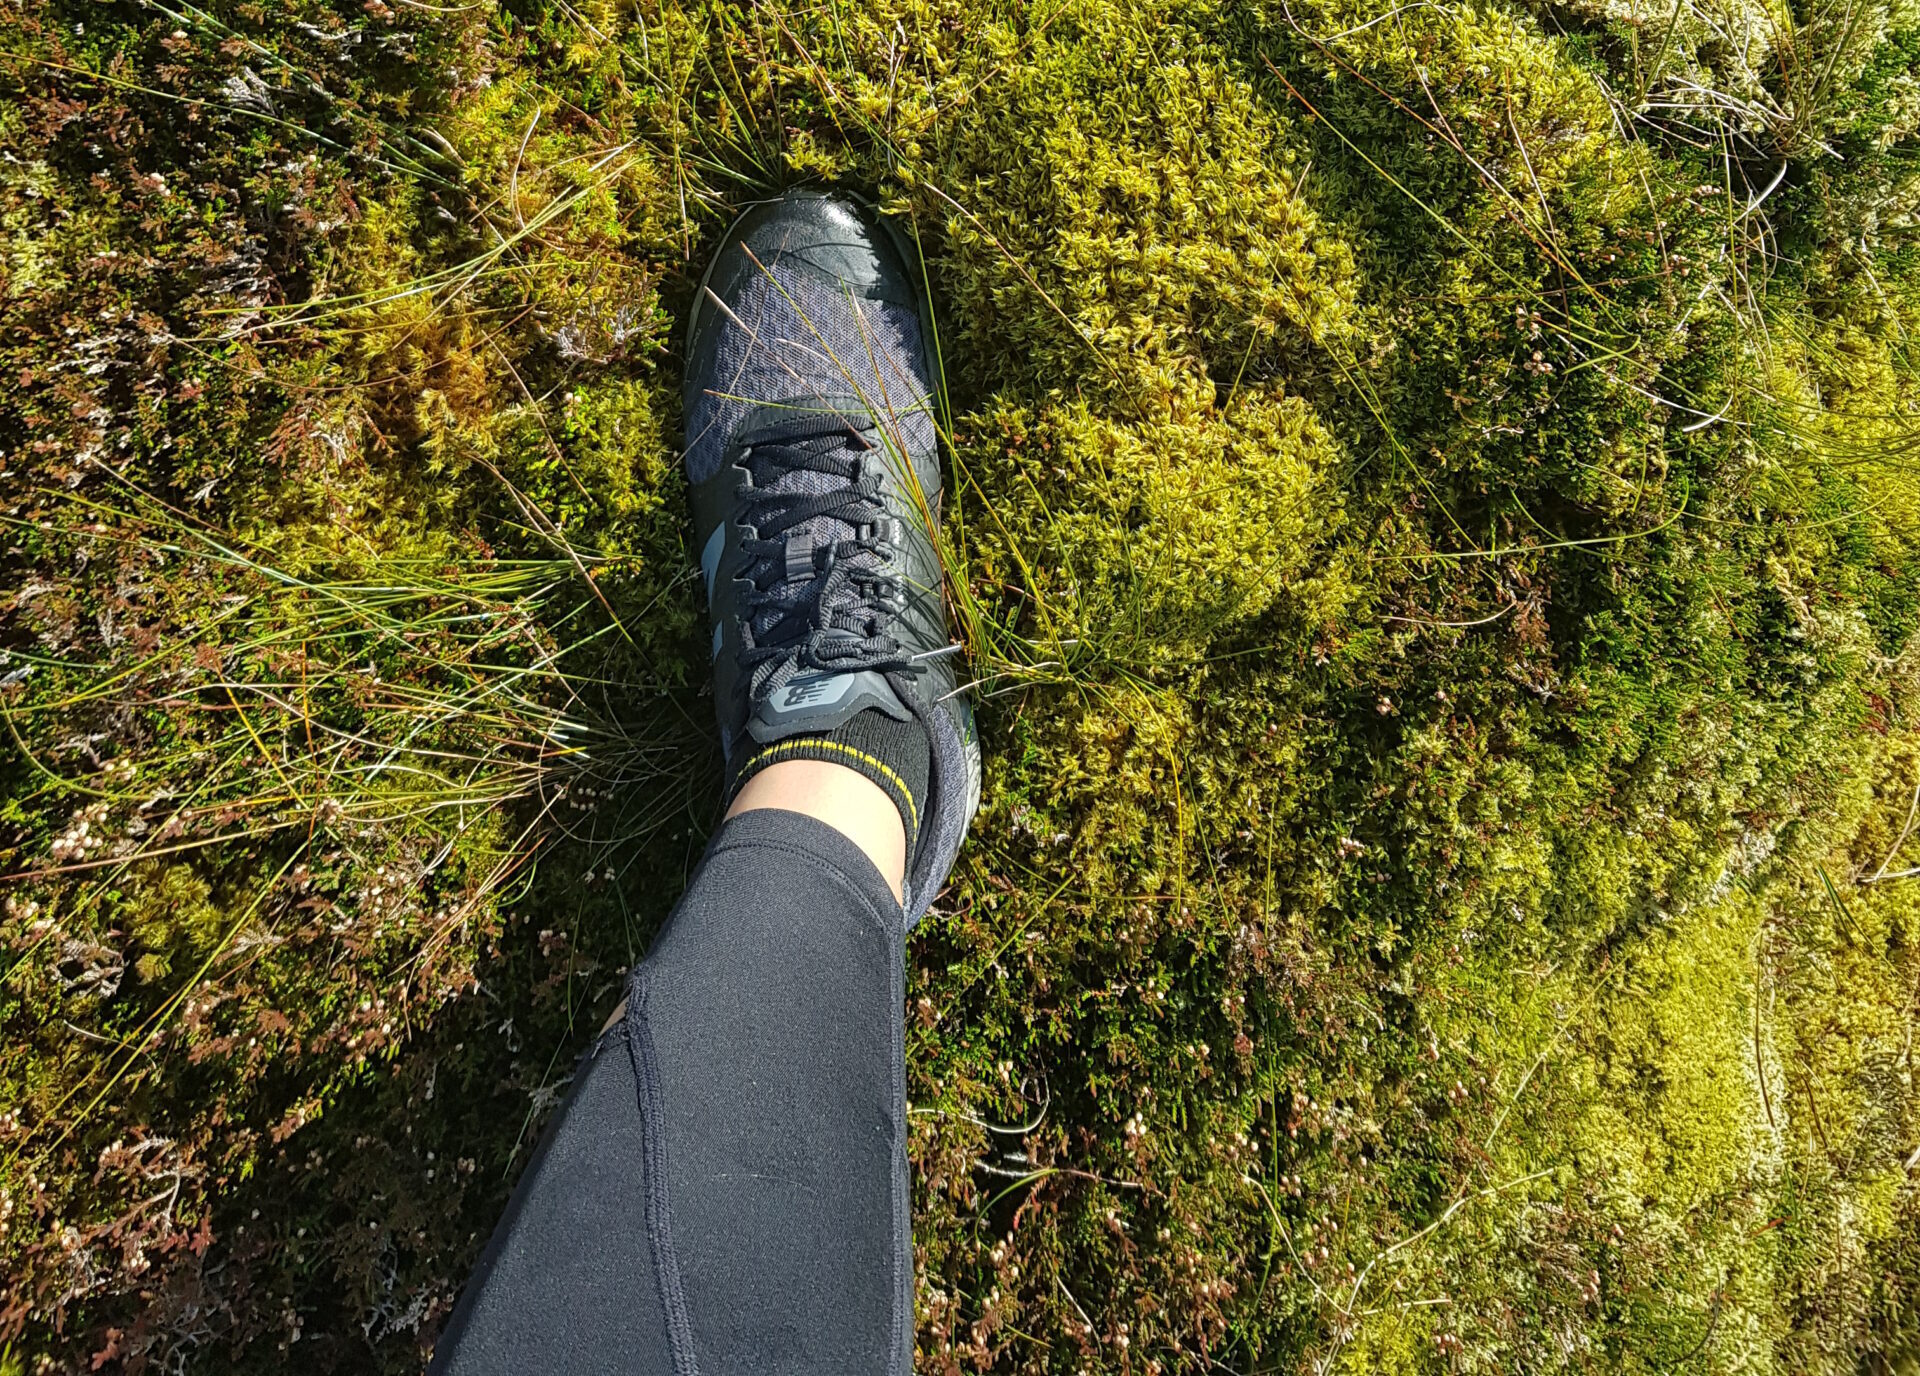 lost on a bog